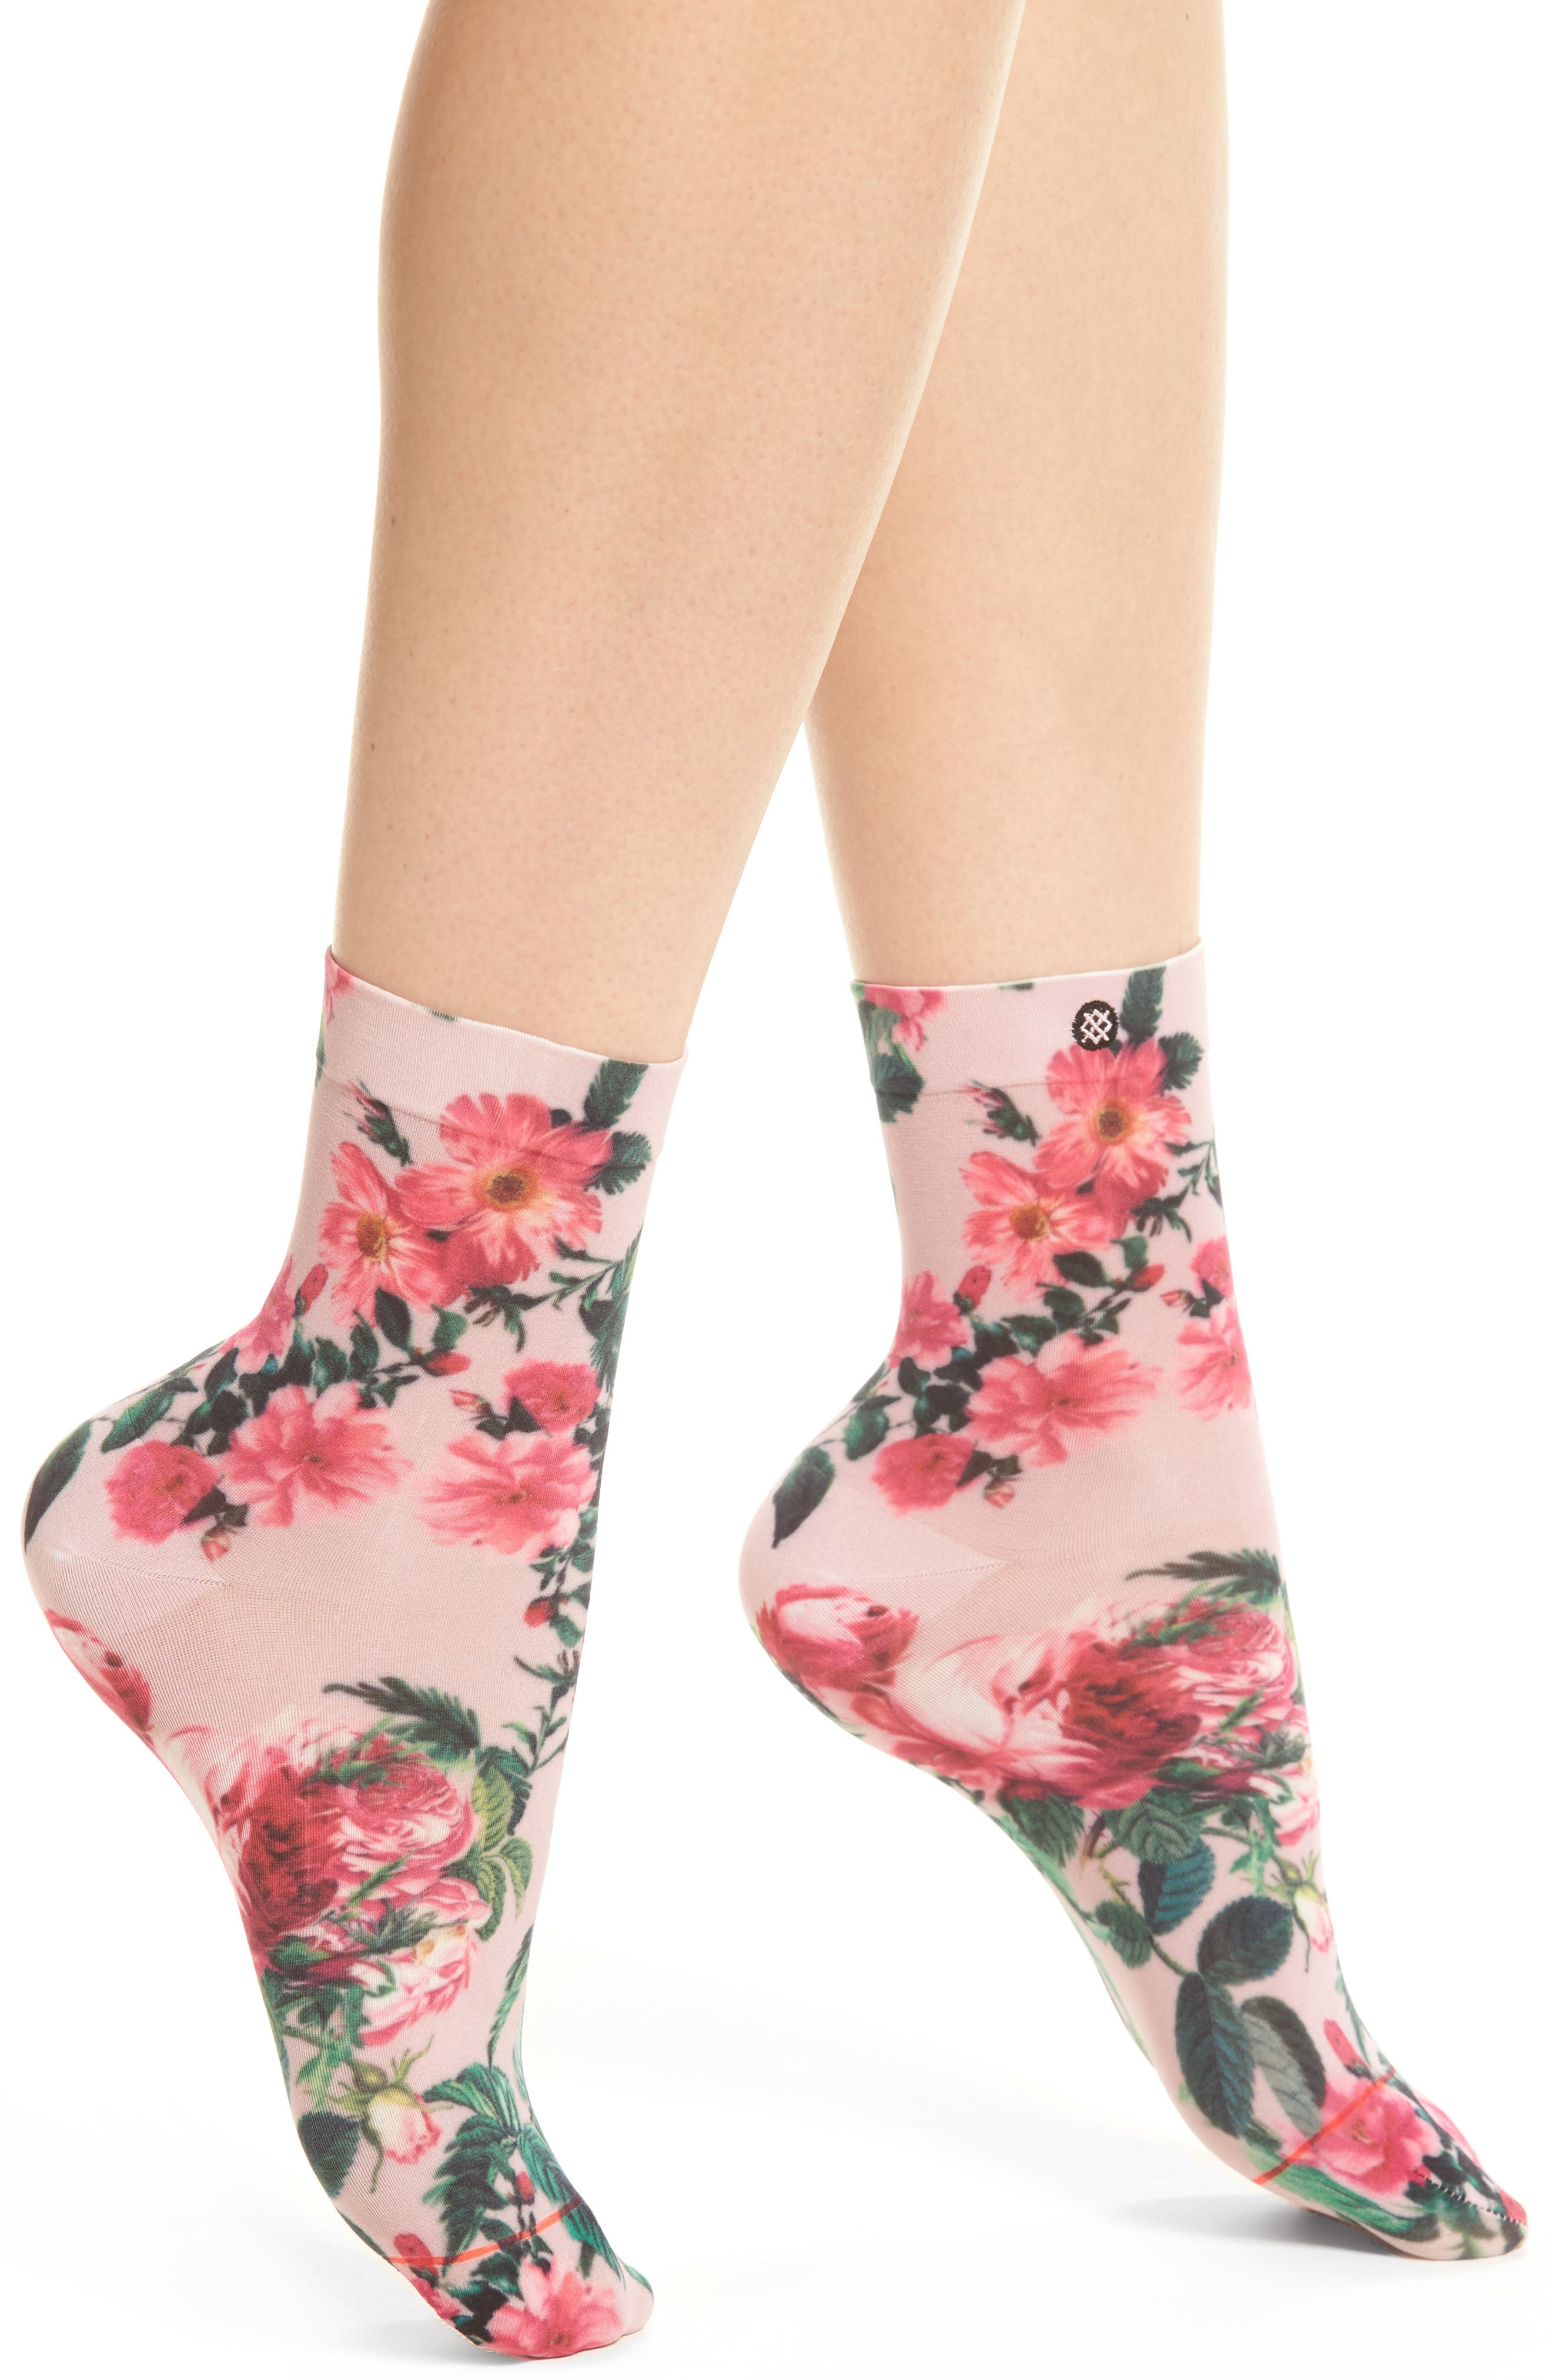 May Flowers Ankle Socks,                         Main,                         color, Pink